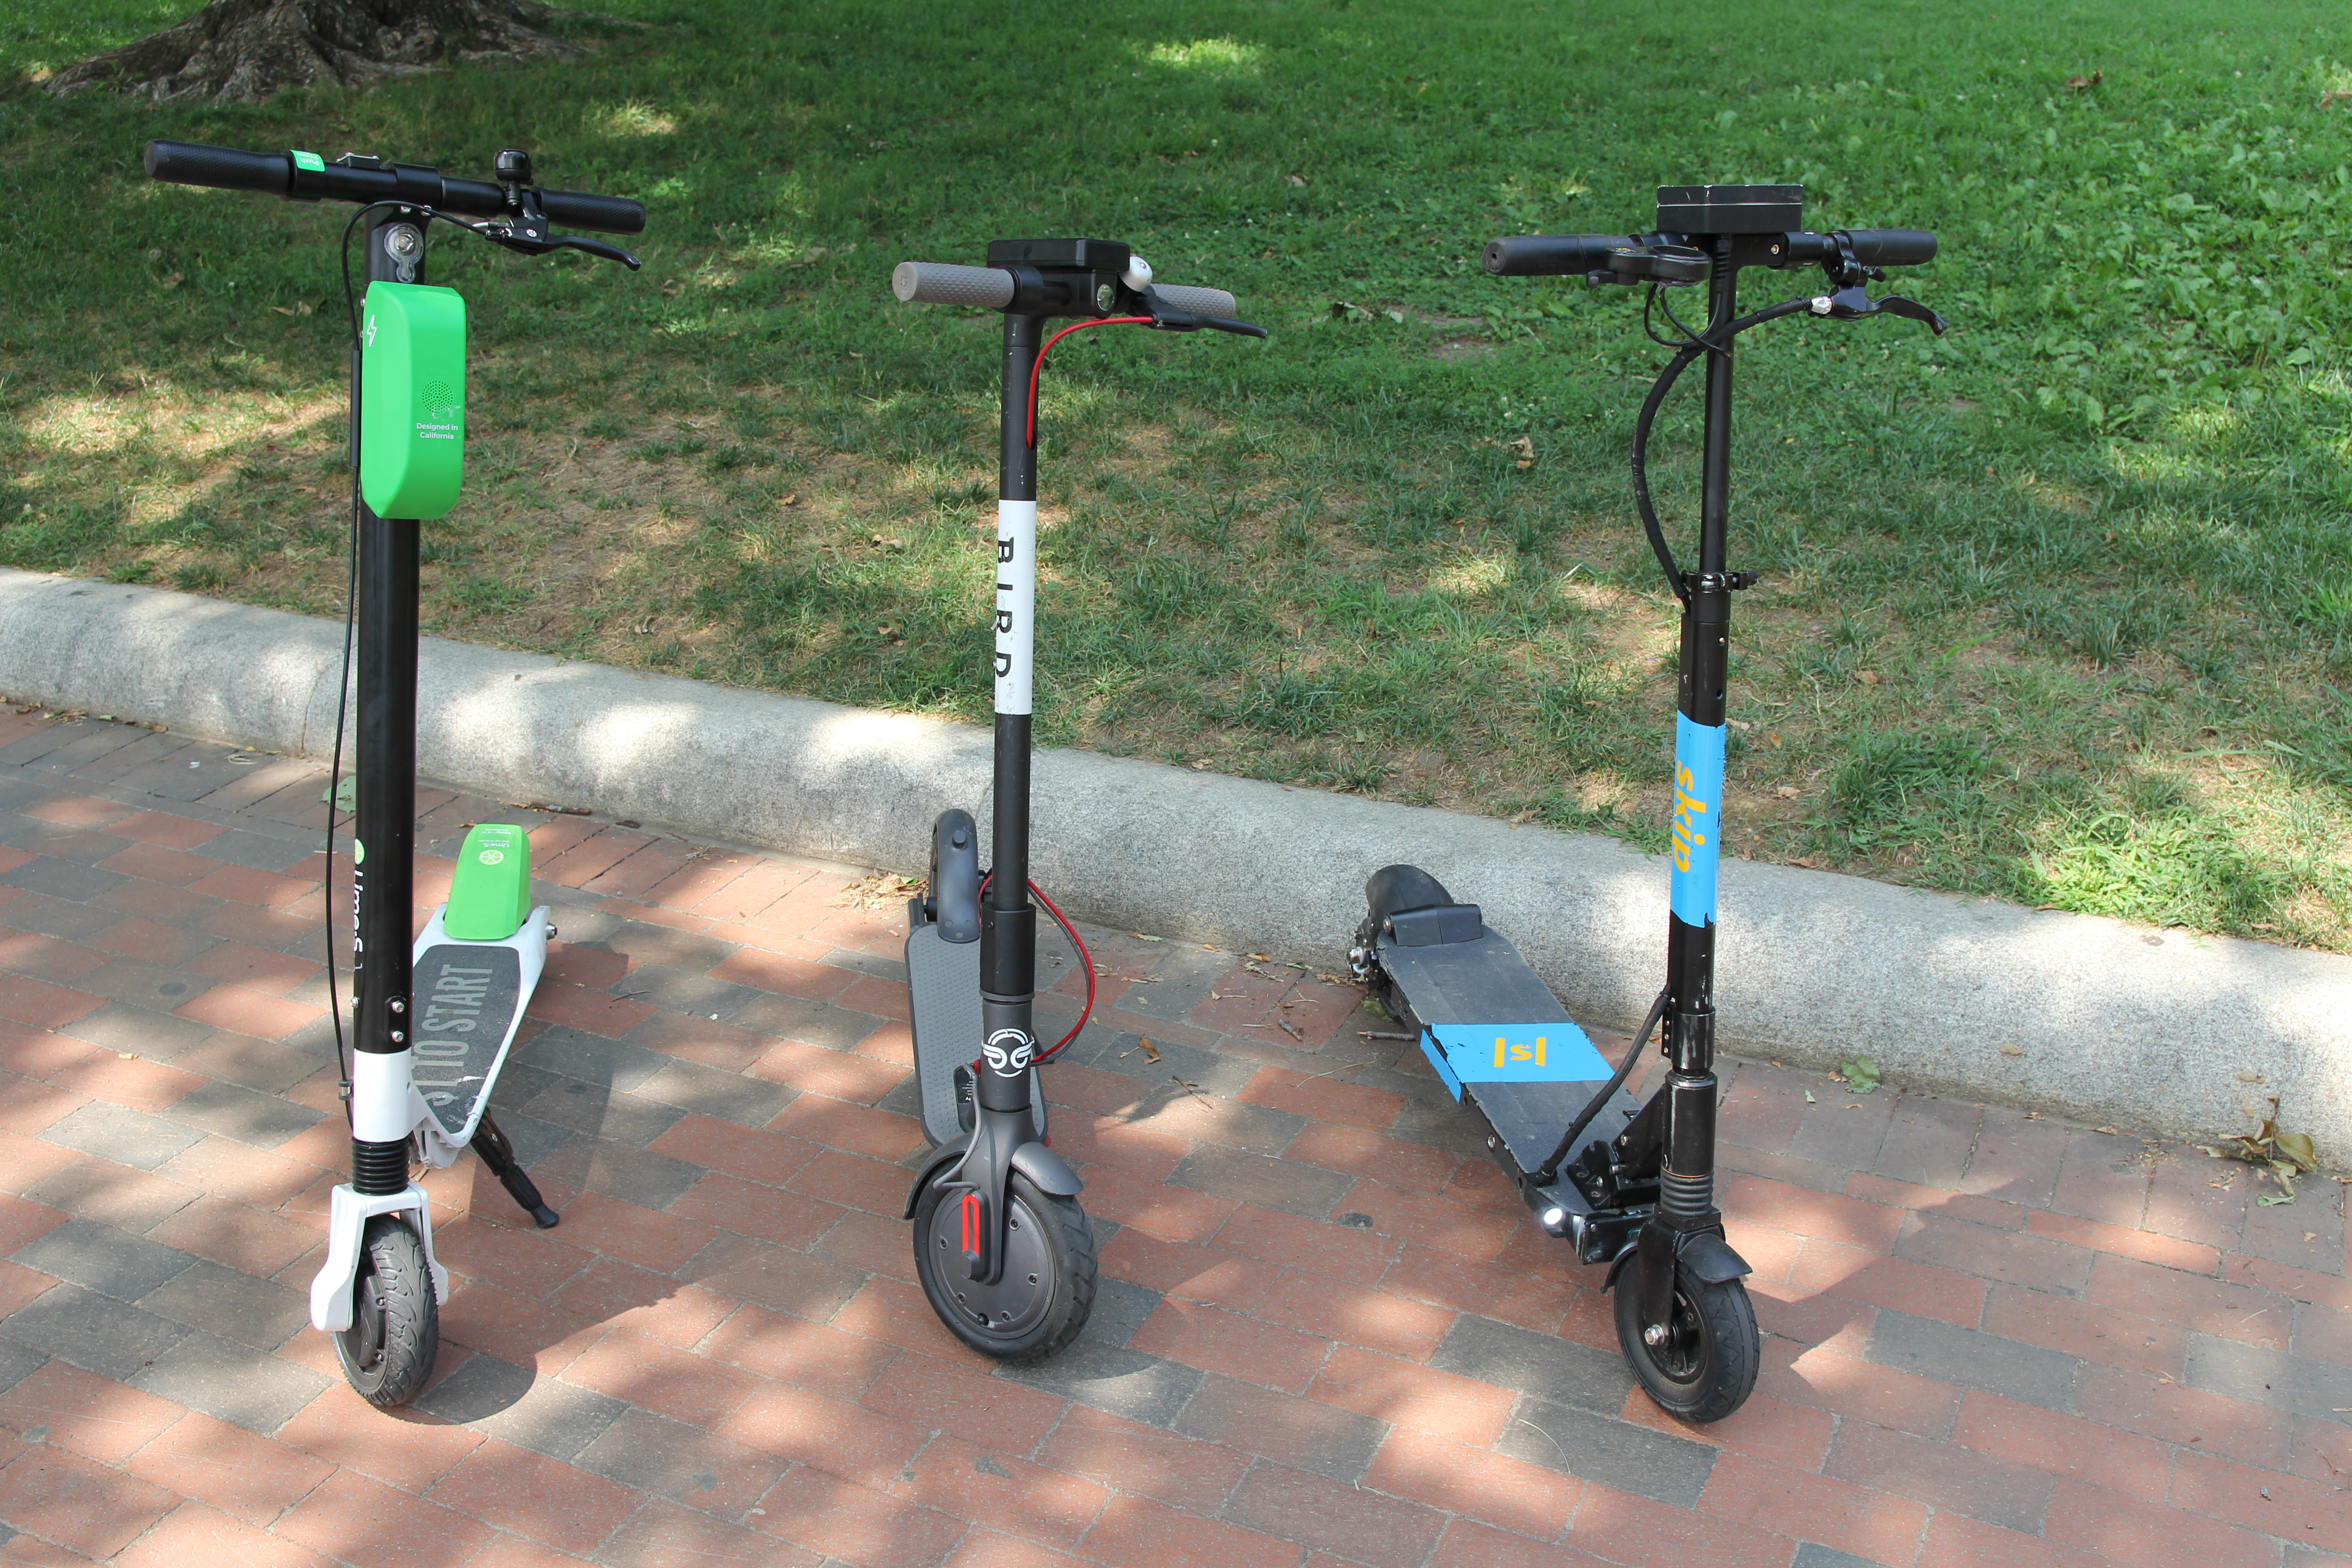 Dockless electric scooters: fad, friend, or foe? - RevZilla